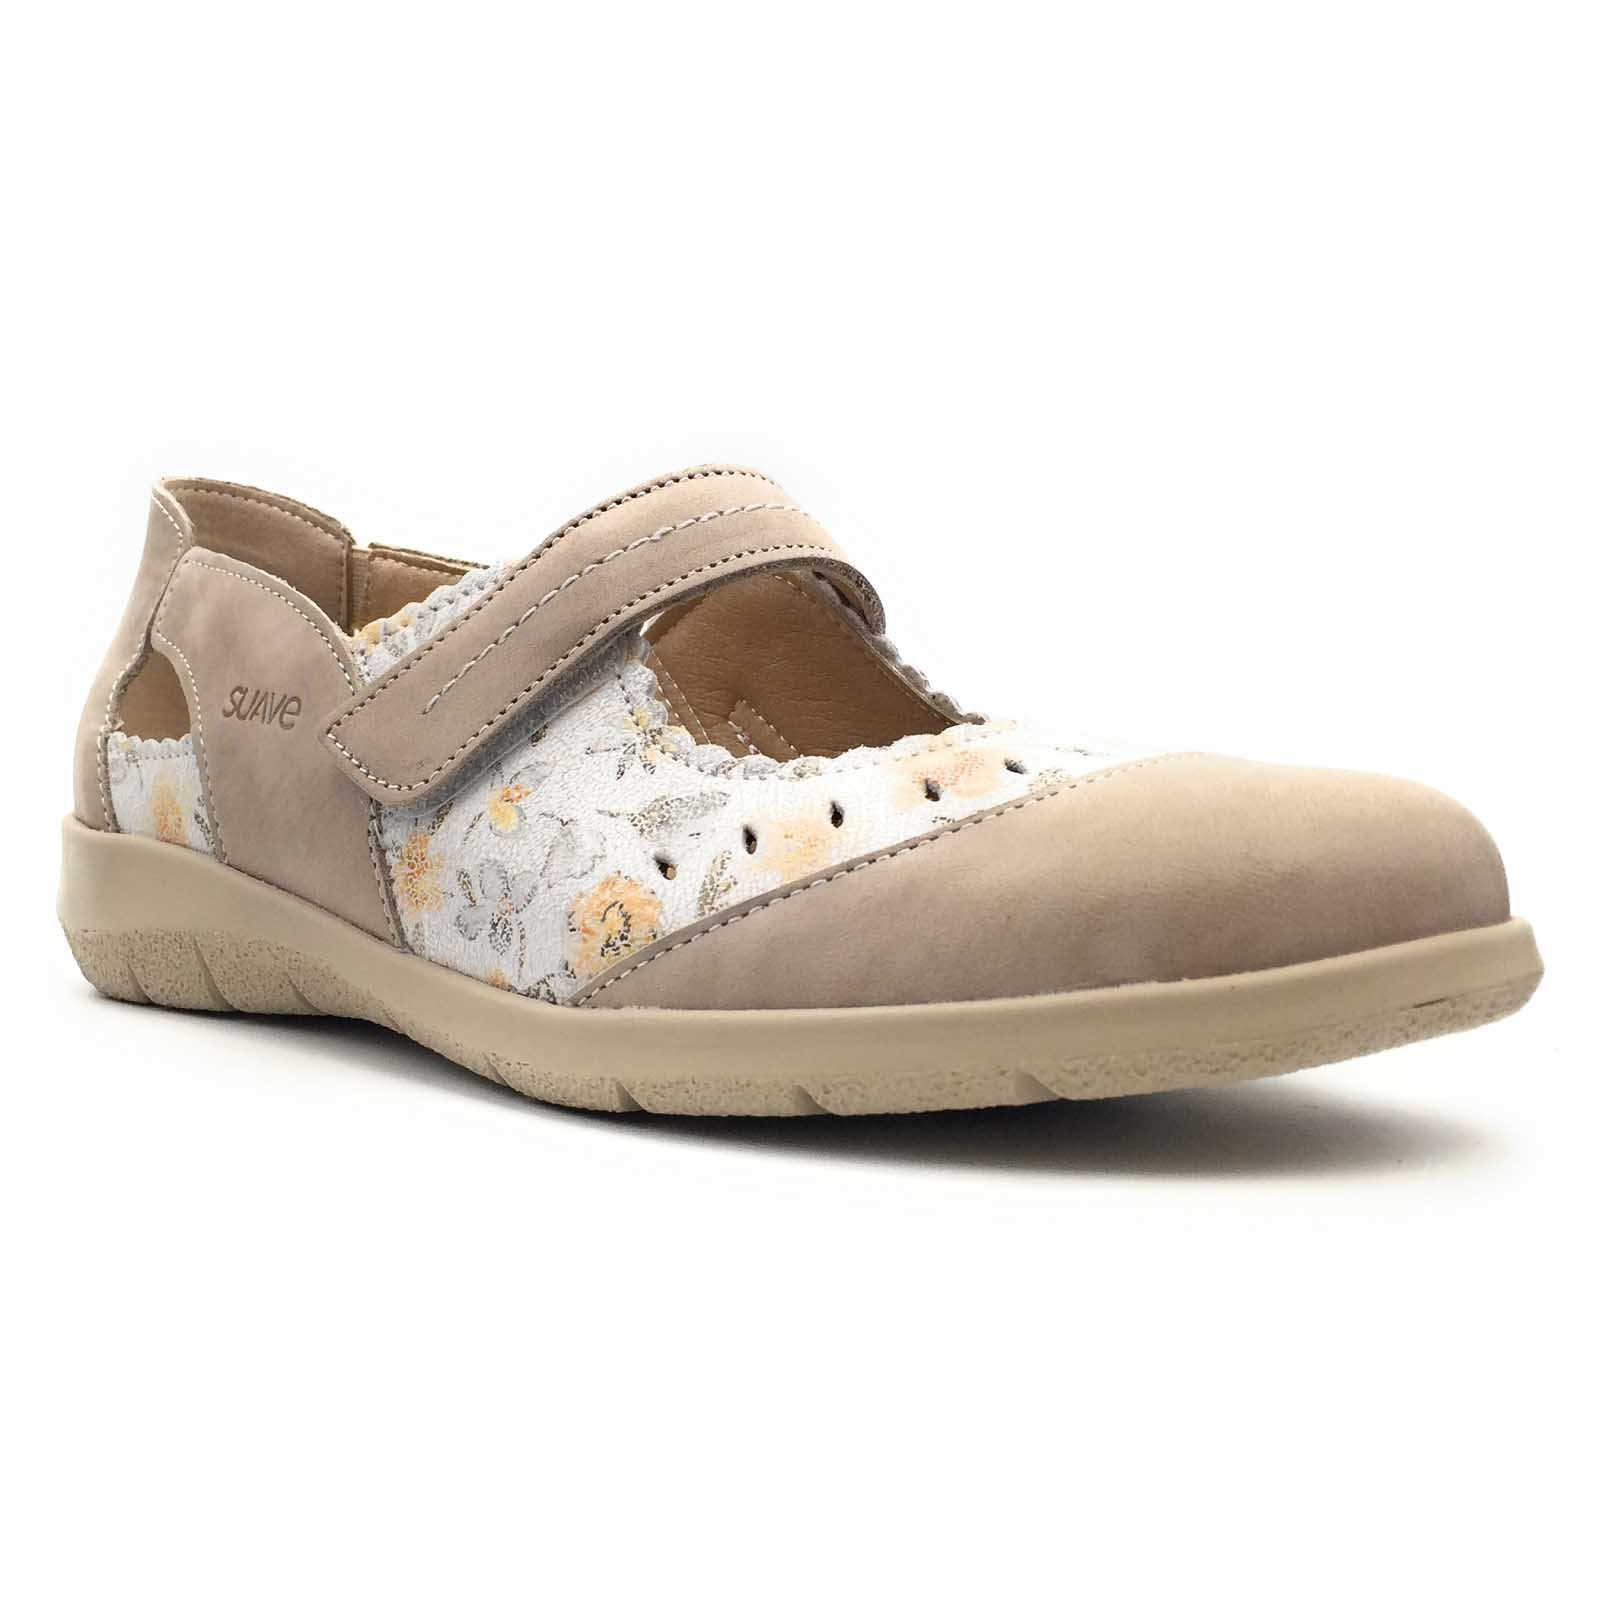 Suave mary janes 6640ms beige